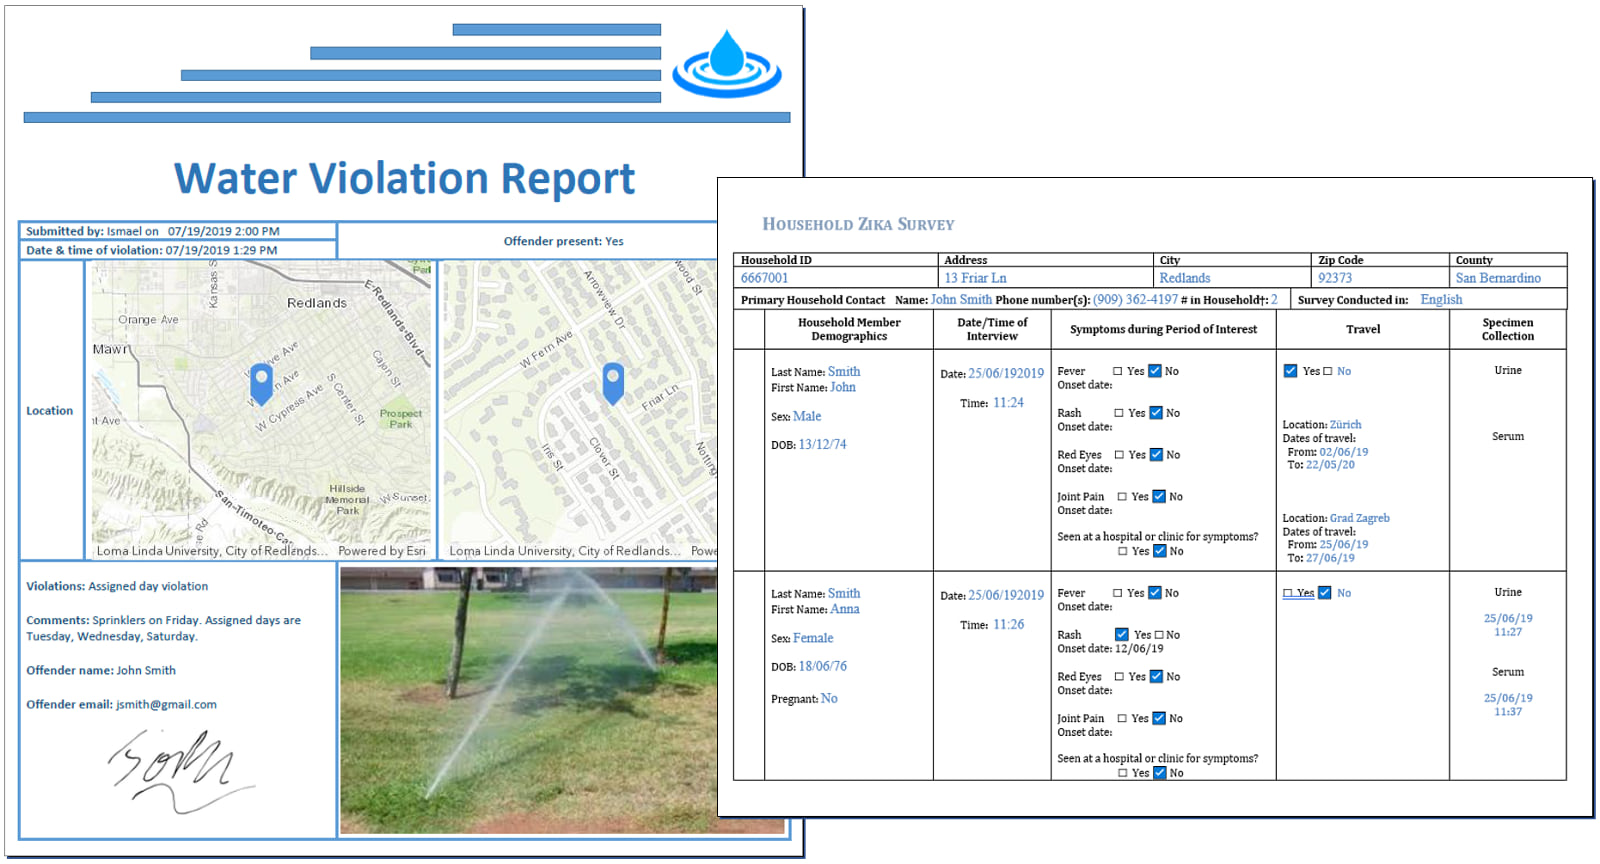 Feature report template for a fictional water violation report.